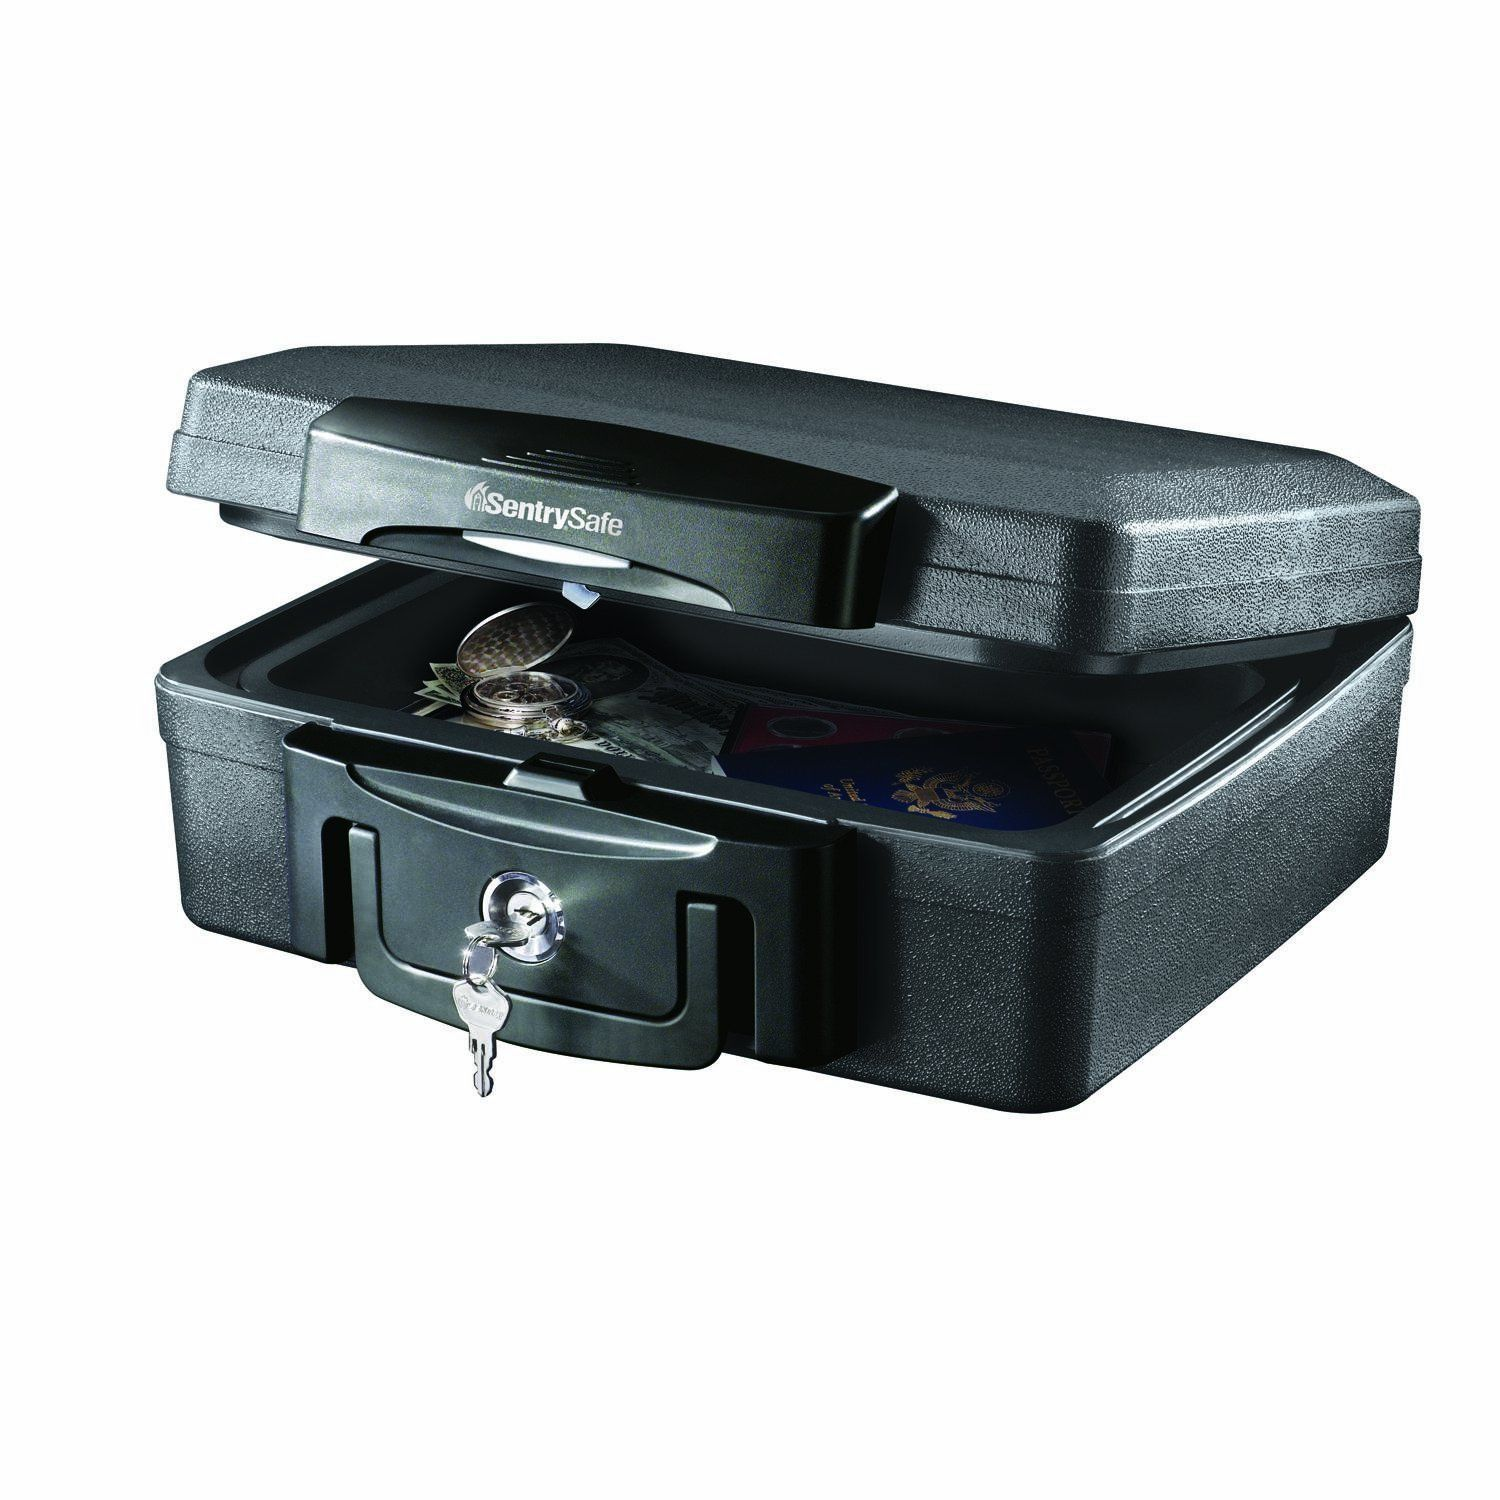 Sentrysafe Fire Safe Waterproof Fire Resistant Chest 17 Cubic